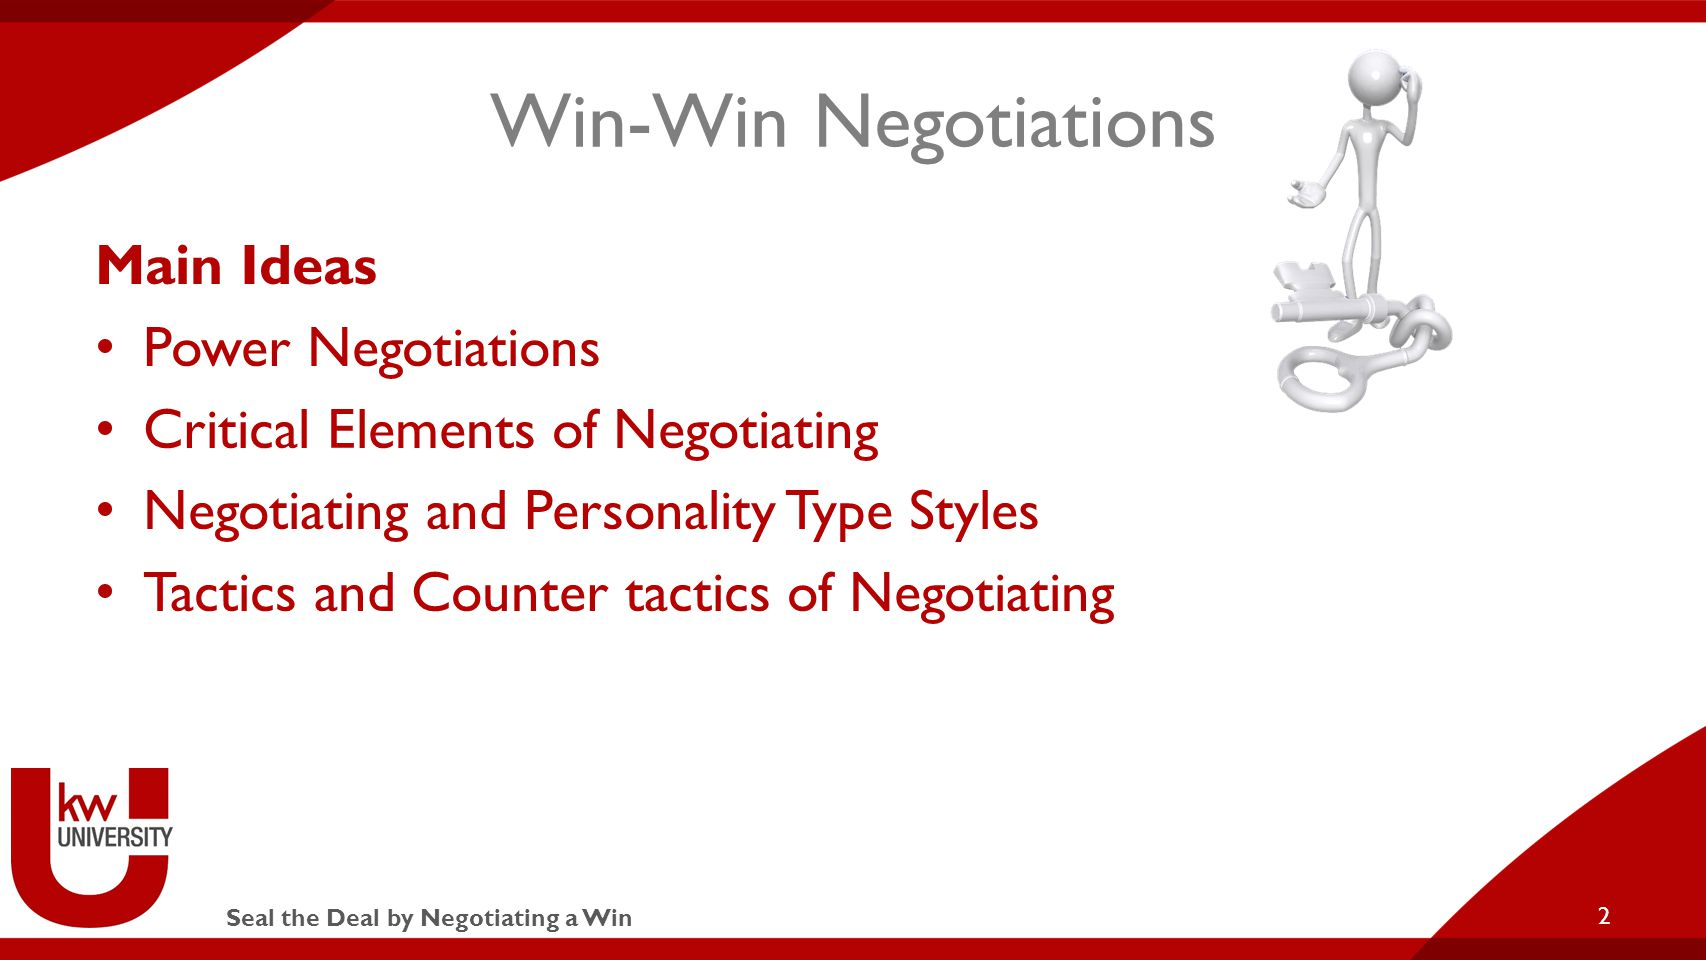 Seal the Deal by Negotiating a Win Win-Win Negotiations Main Ideas Power Negotiations Critical Elements of Negotiating Negotiating and Personality Type Styles Tactics and Counter tactics of Negotiating 2